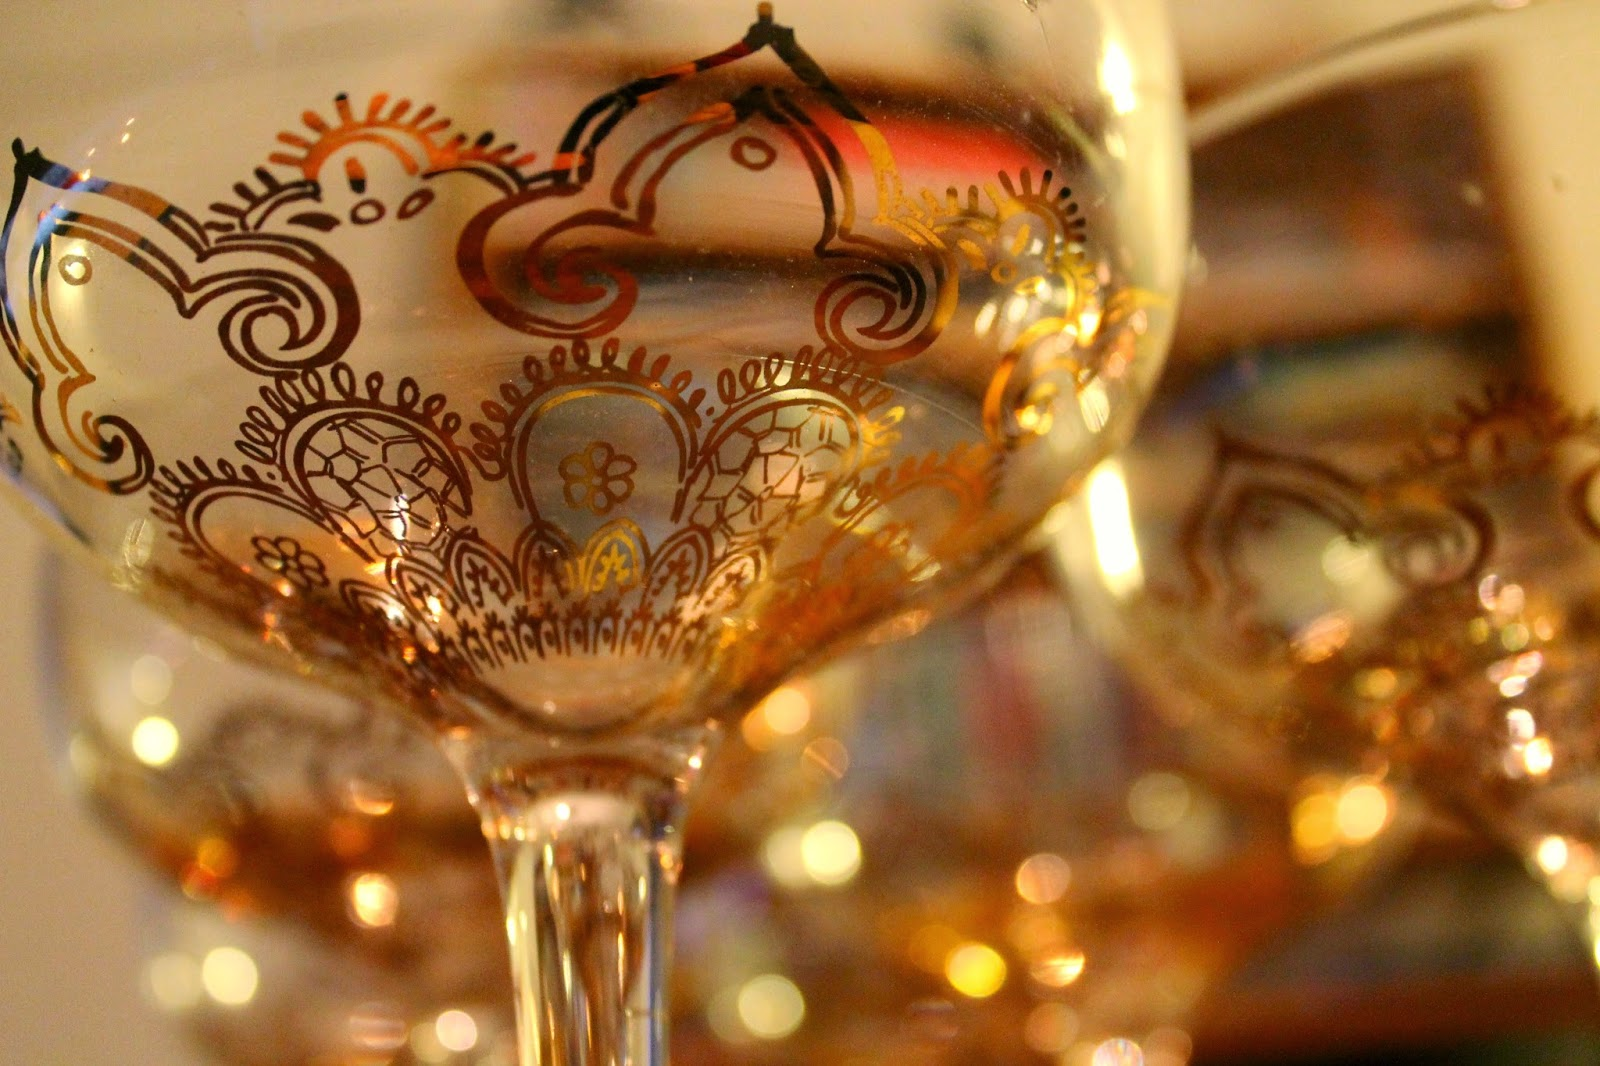 vintage and oriental styled champagne glasses with beautiful golden details